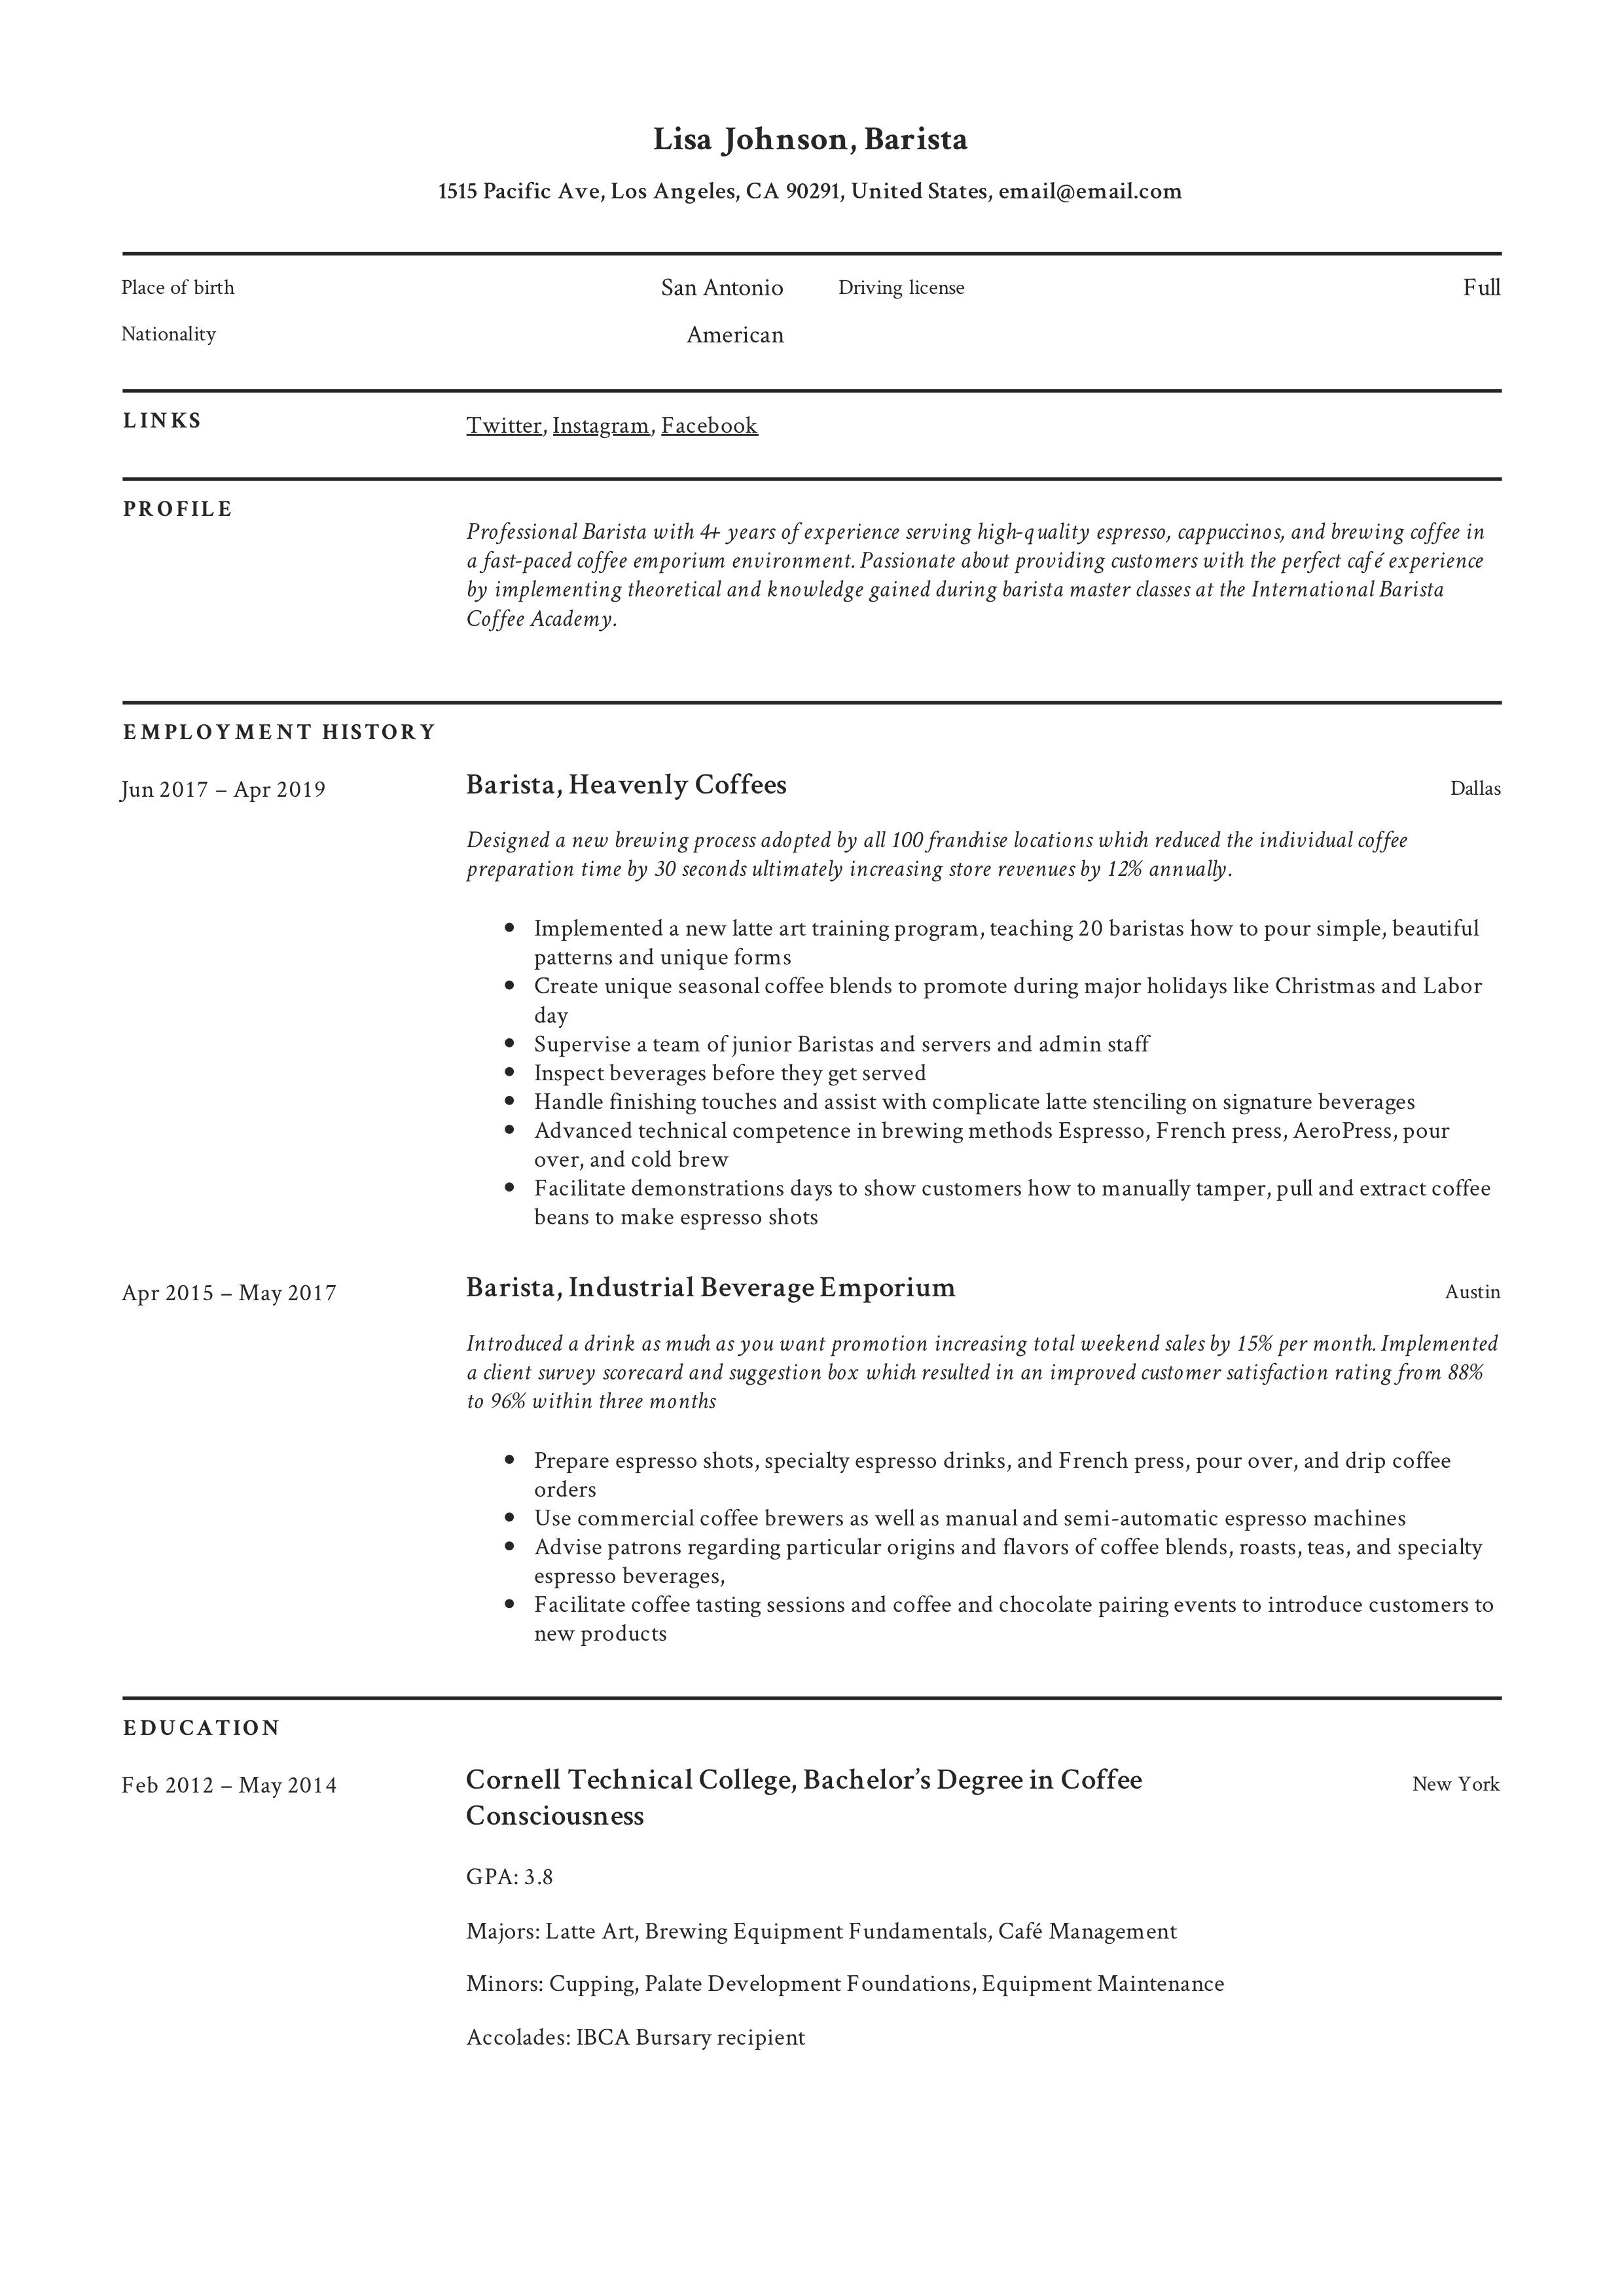 Barista Resume & Writing Guide in 2020 | Barista, Guided ...